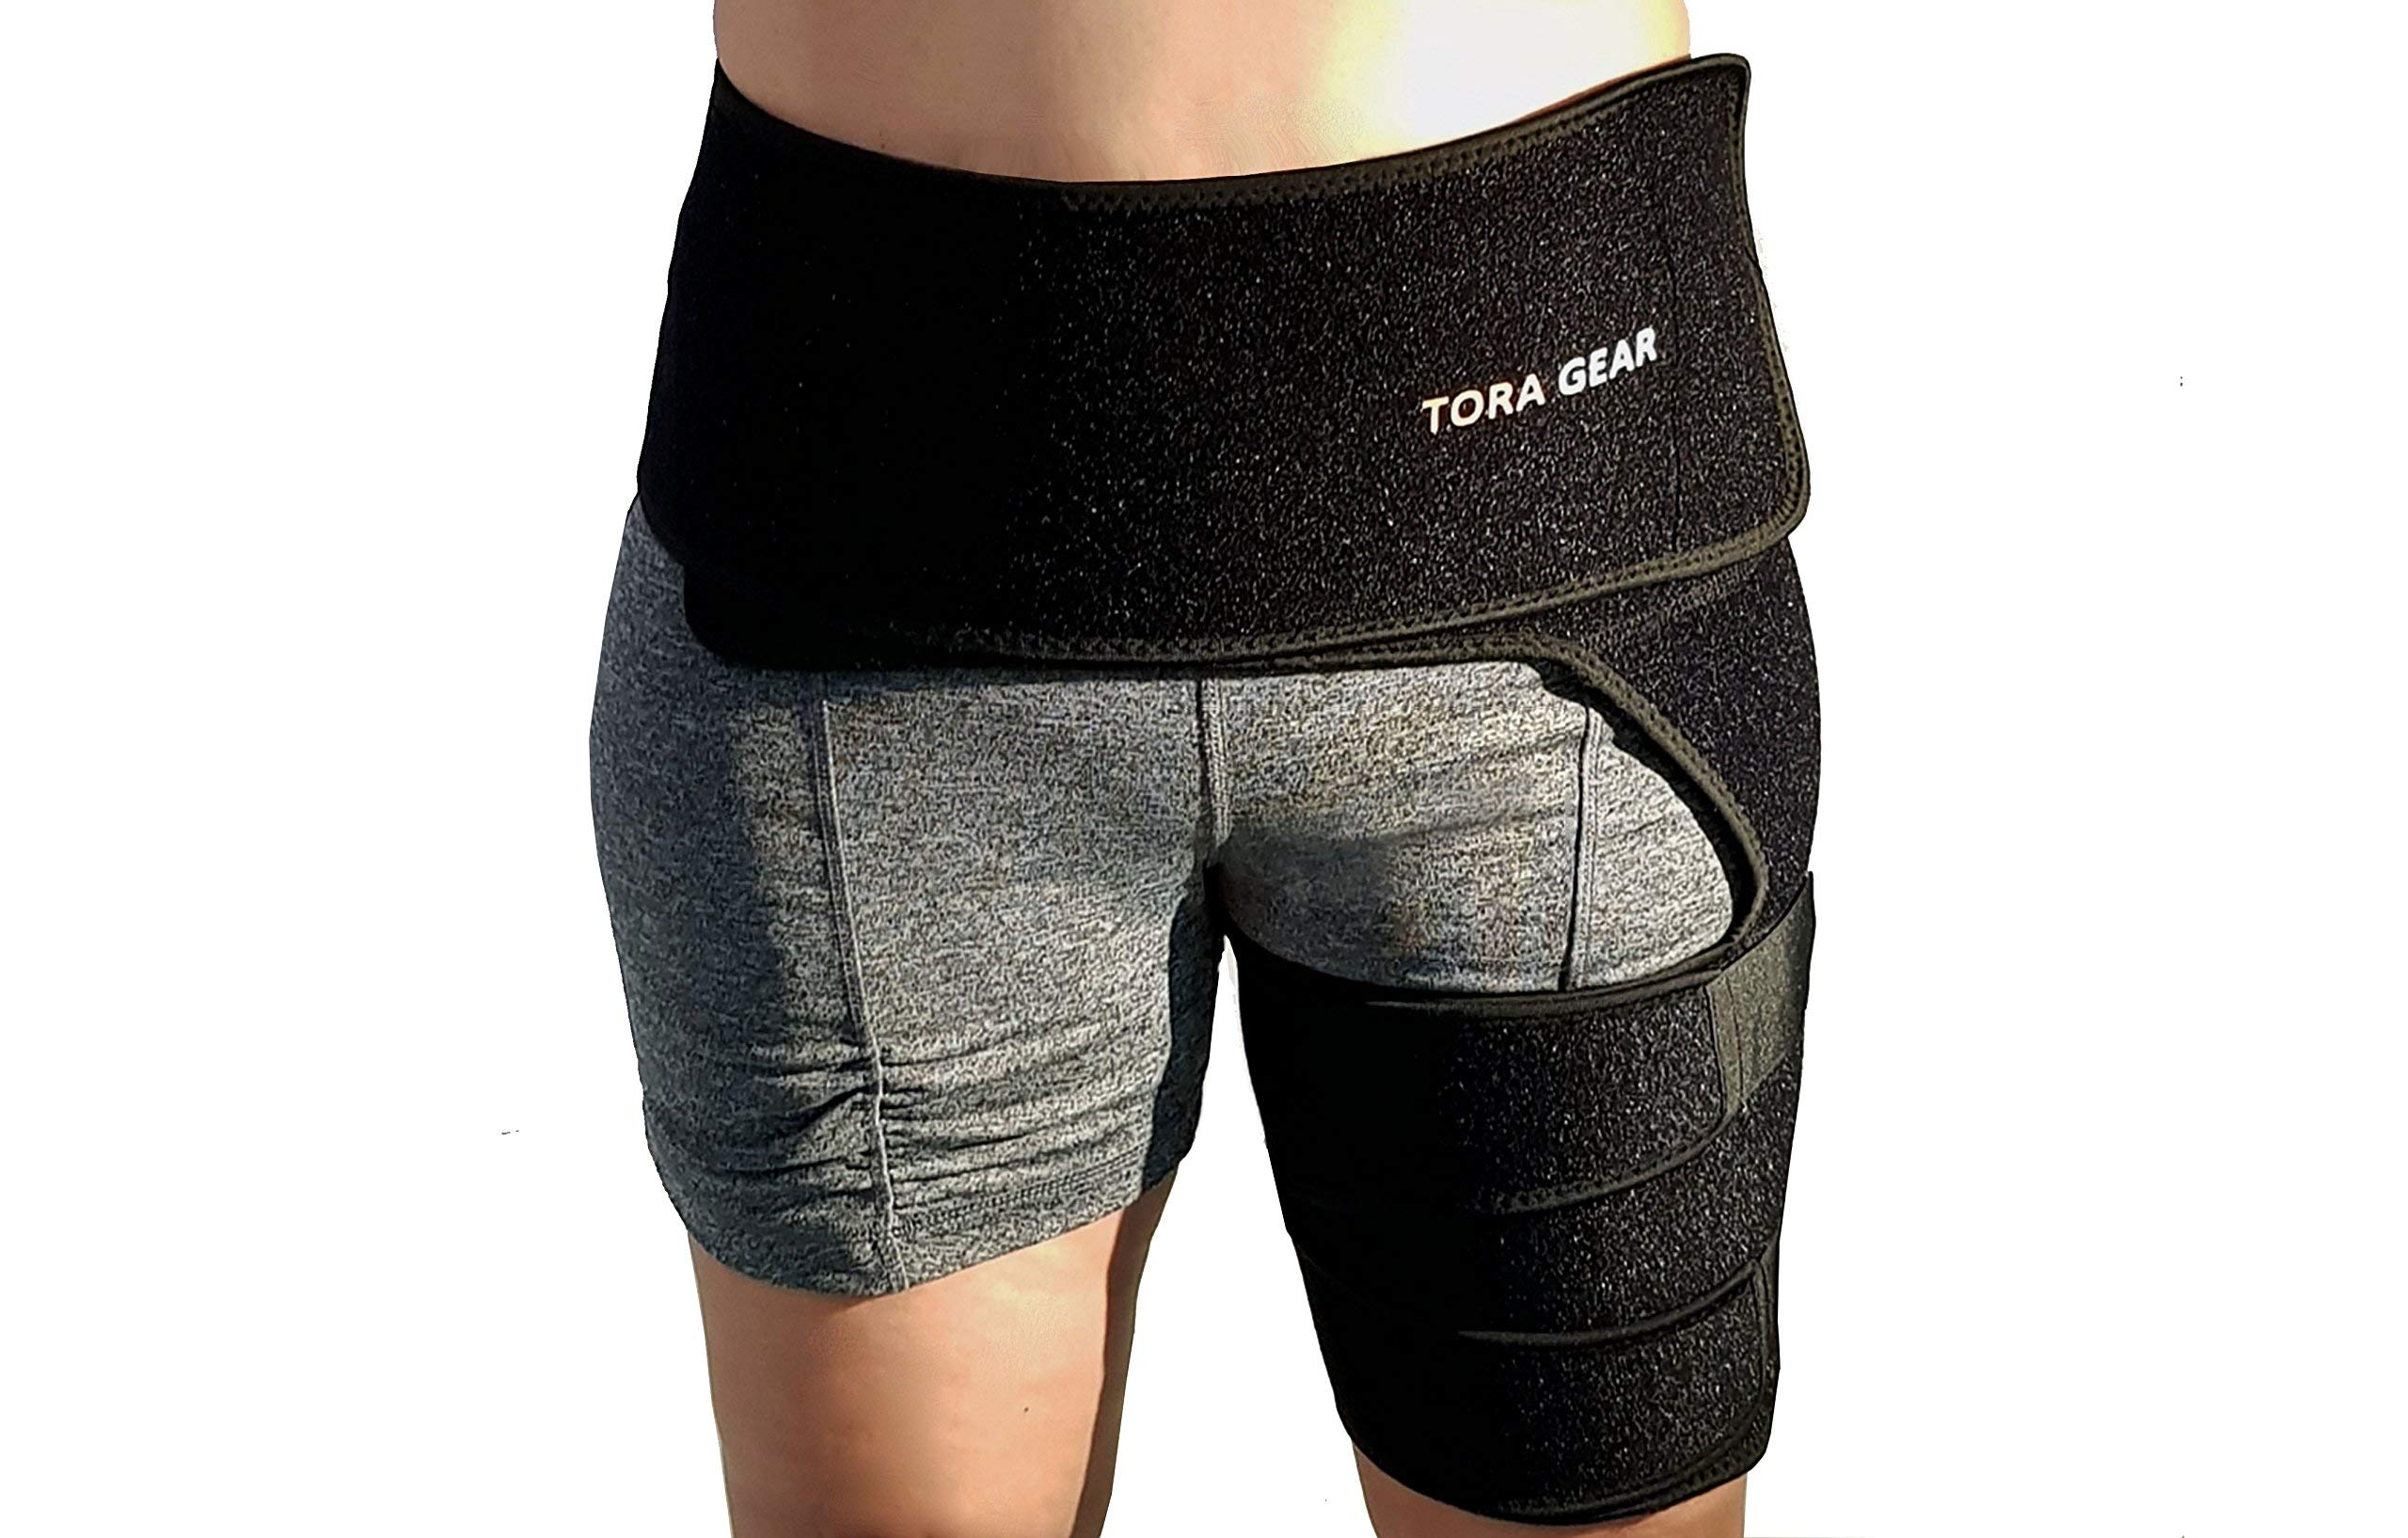 Groin and Hip Brace – Adjustable Compression Thigh Support – Provides Pain Relief to Sports Injuries, Hip Replacement Surgery, Sciatica, Hernia and Hamstring Discomfort by Tora Gear